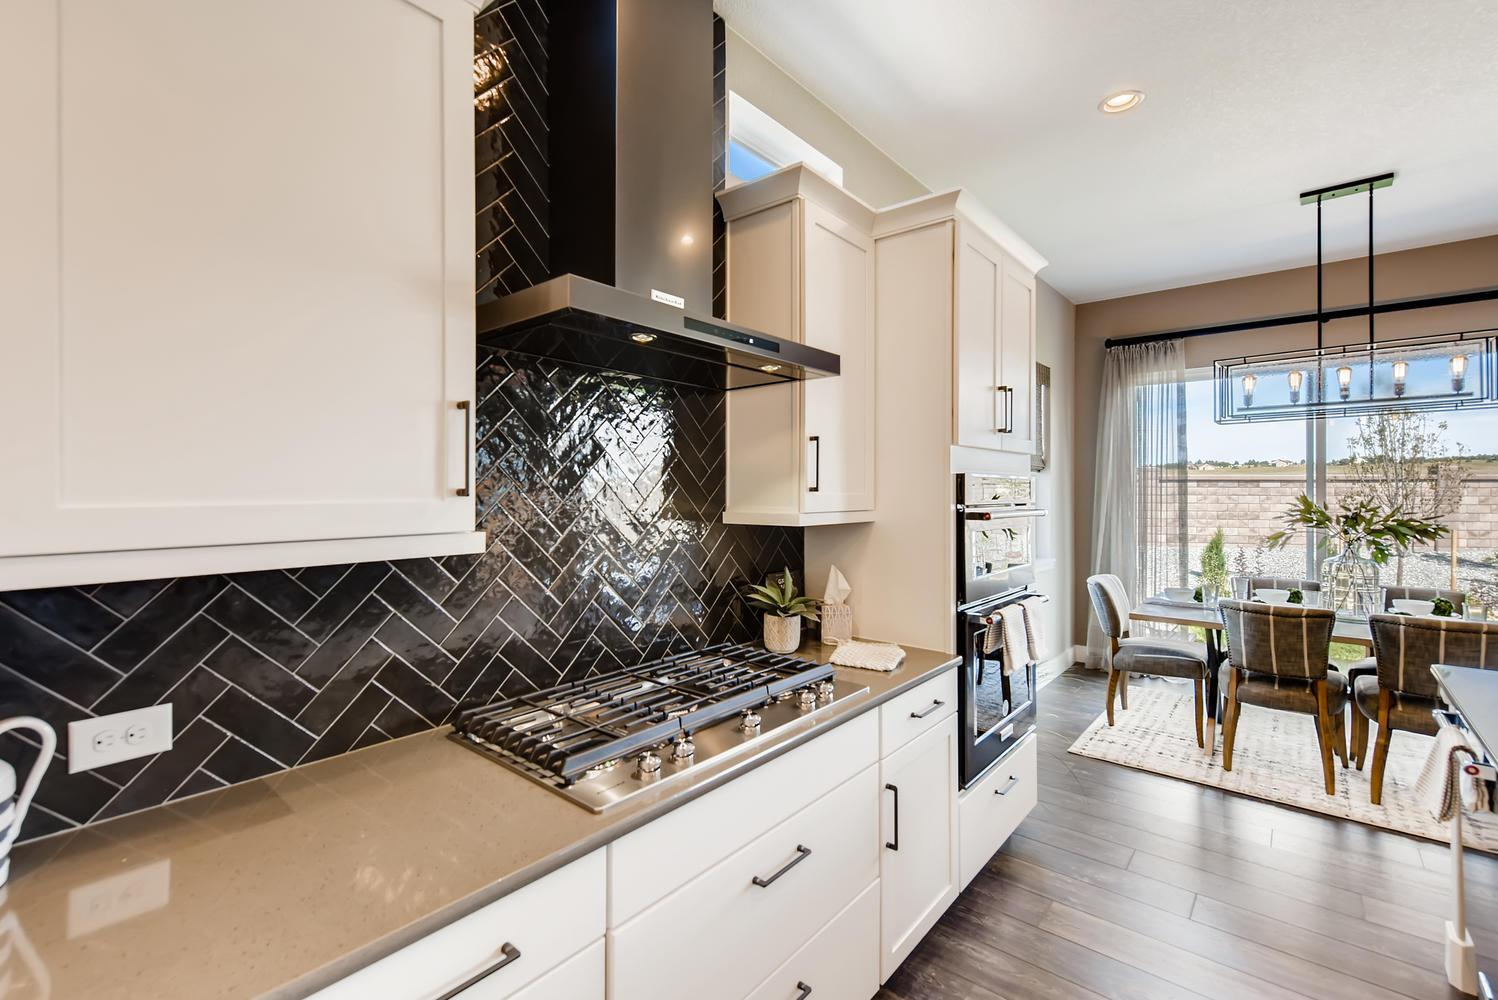 Kitchen featured in the Daylight By Classic Homes in Colorado Springs, CO